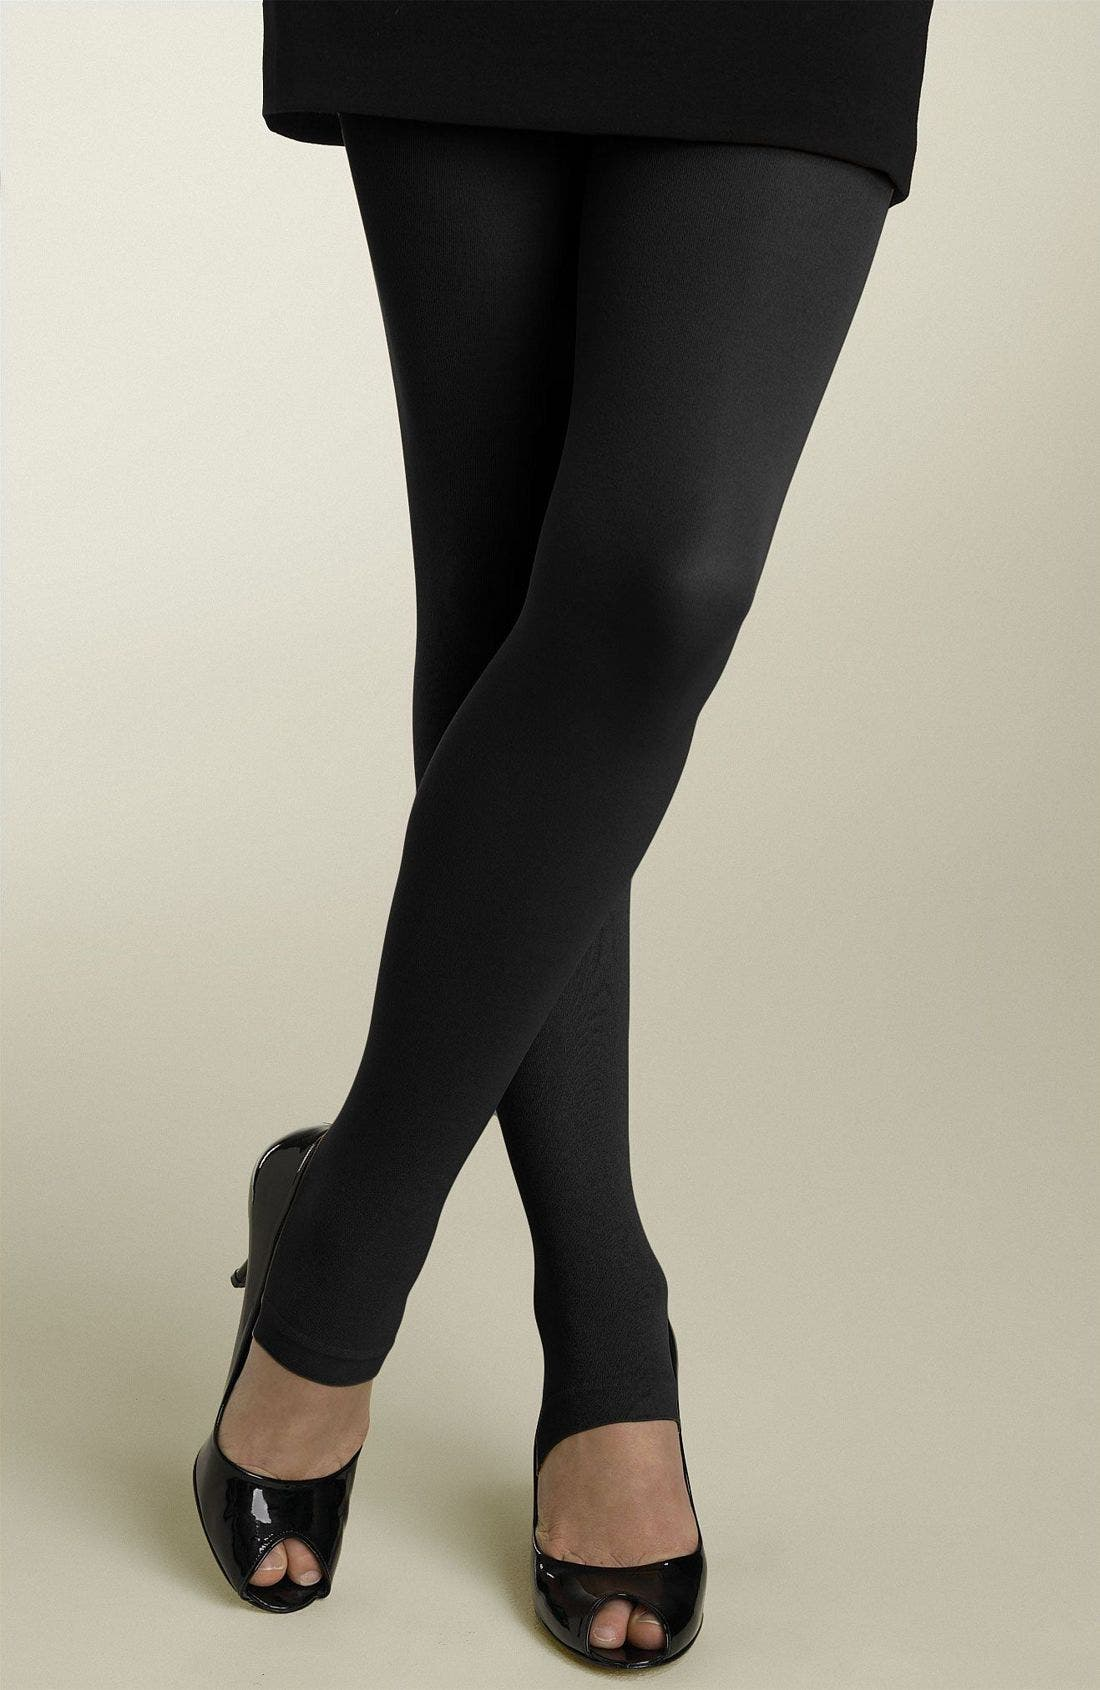 Main Image - Nordstrom Footless Tights